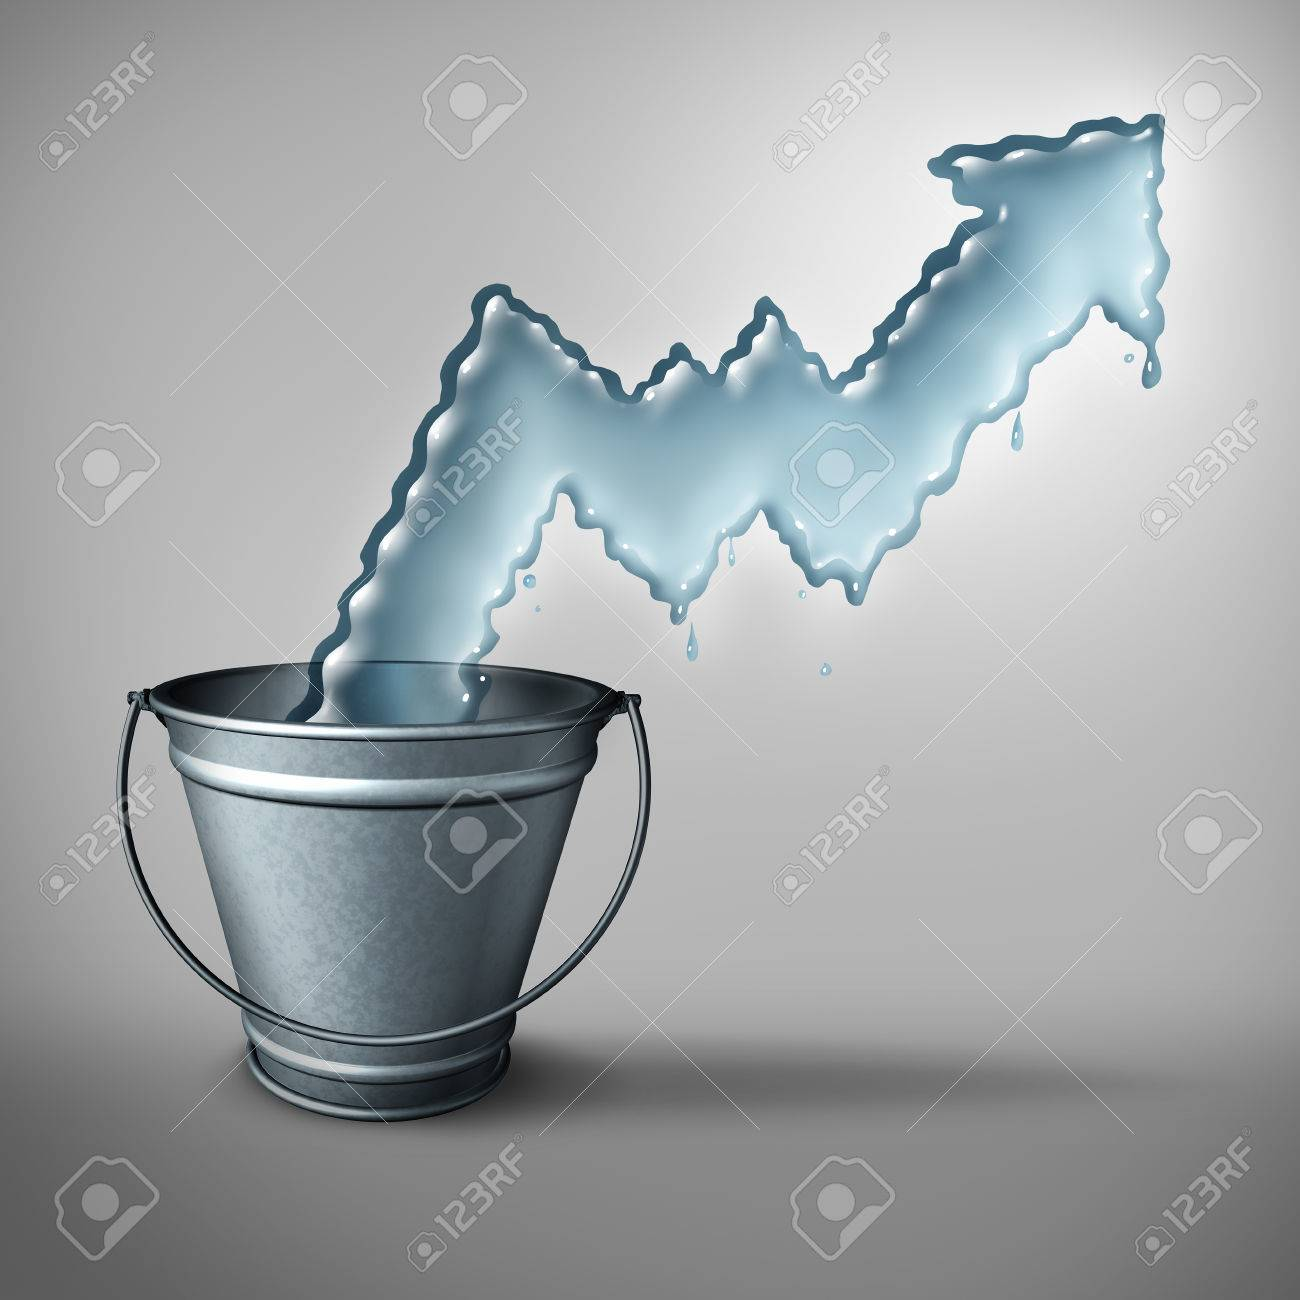 Water Demand Concept And Clean Drinking Freshwater Scarcity Crisis